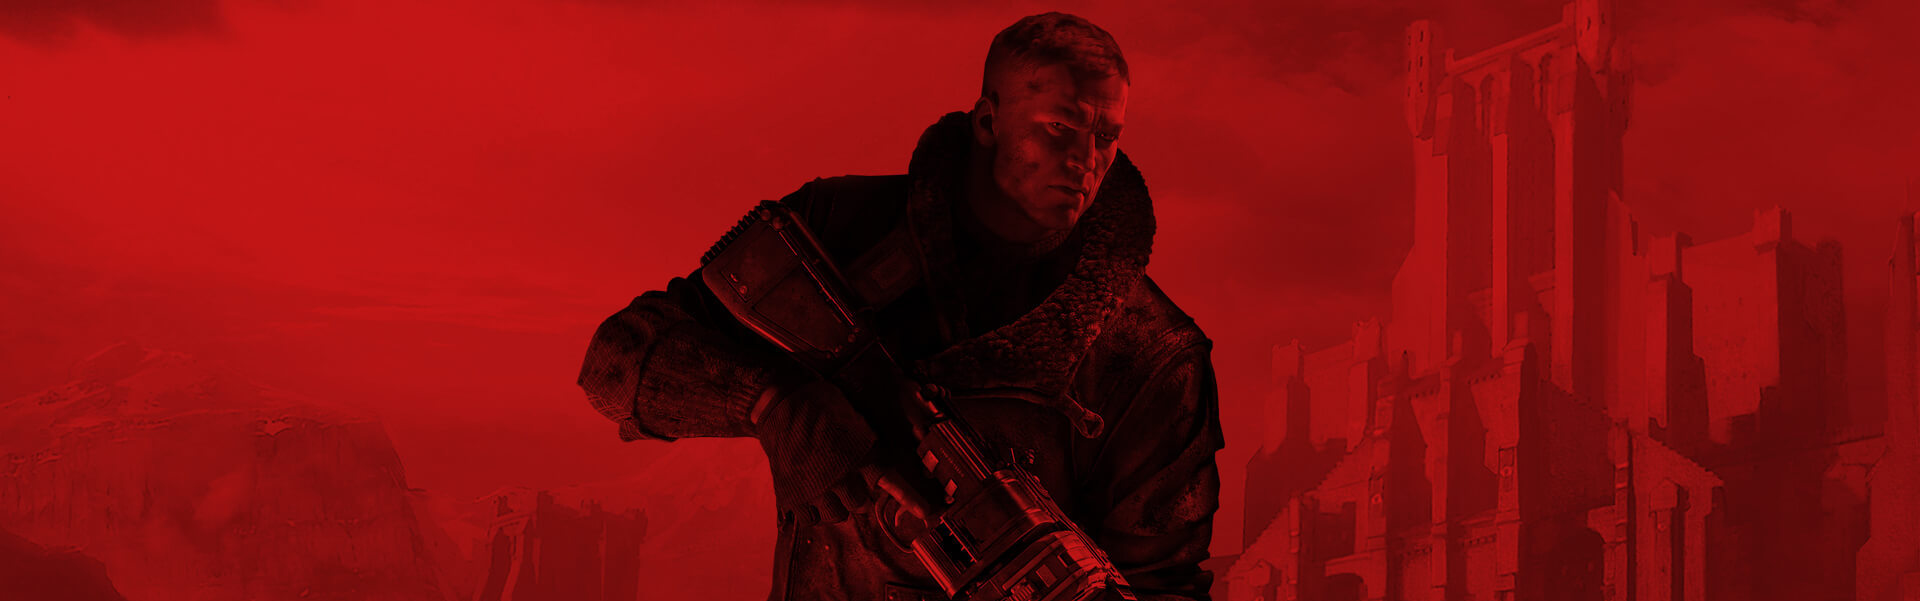 Wolfenstein: The Old Blood (uncut) Steam Key GLOBAL